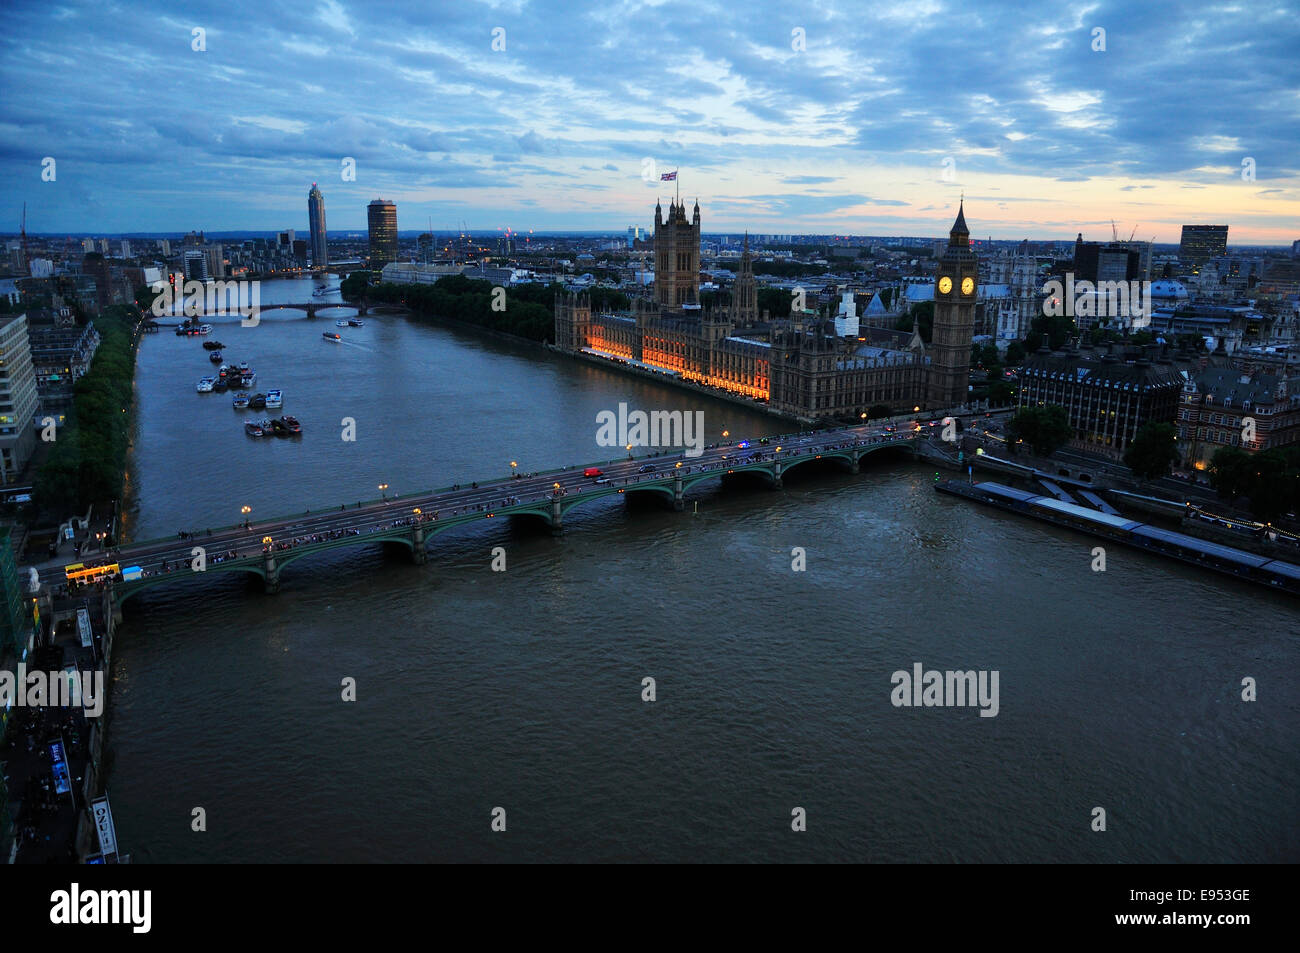 View from the London Eye on Westminster Bridge, Houses of Parliament, and Elizabeth Tower clock tower, London, England - Stock Image